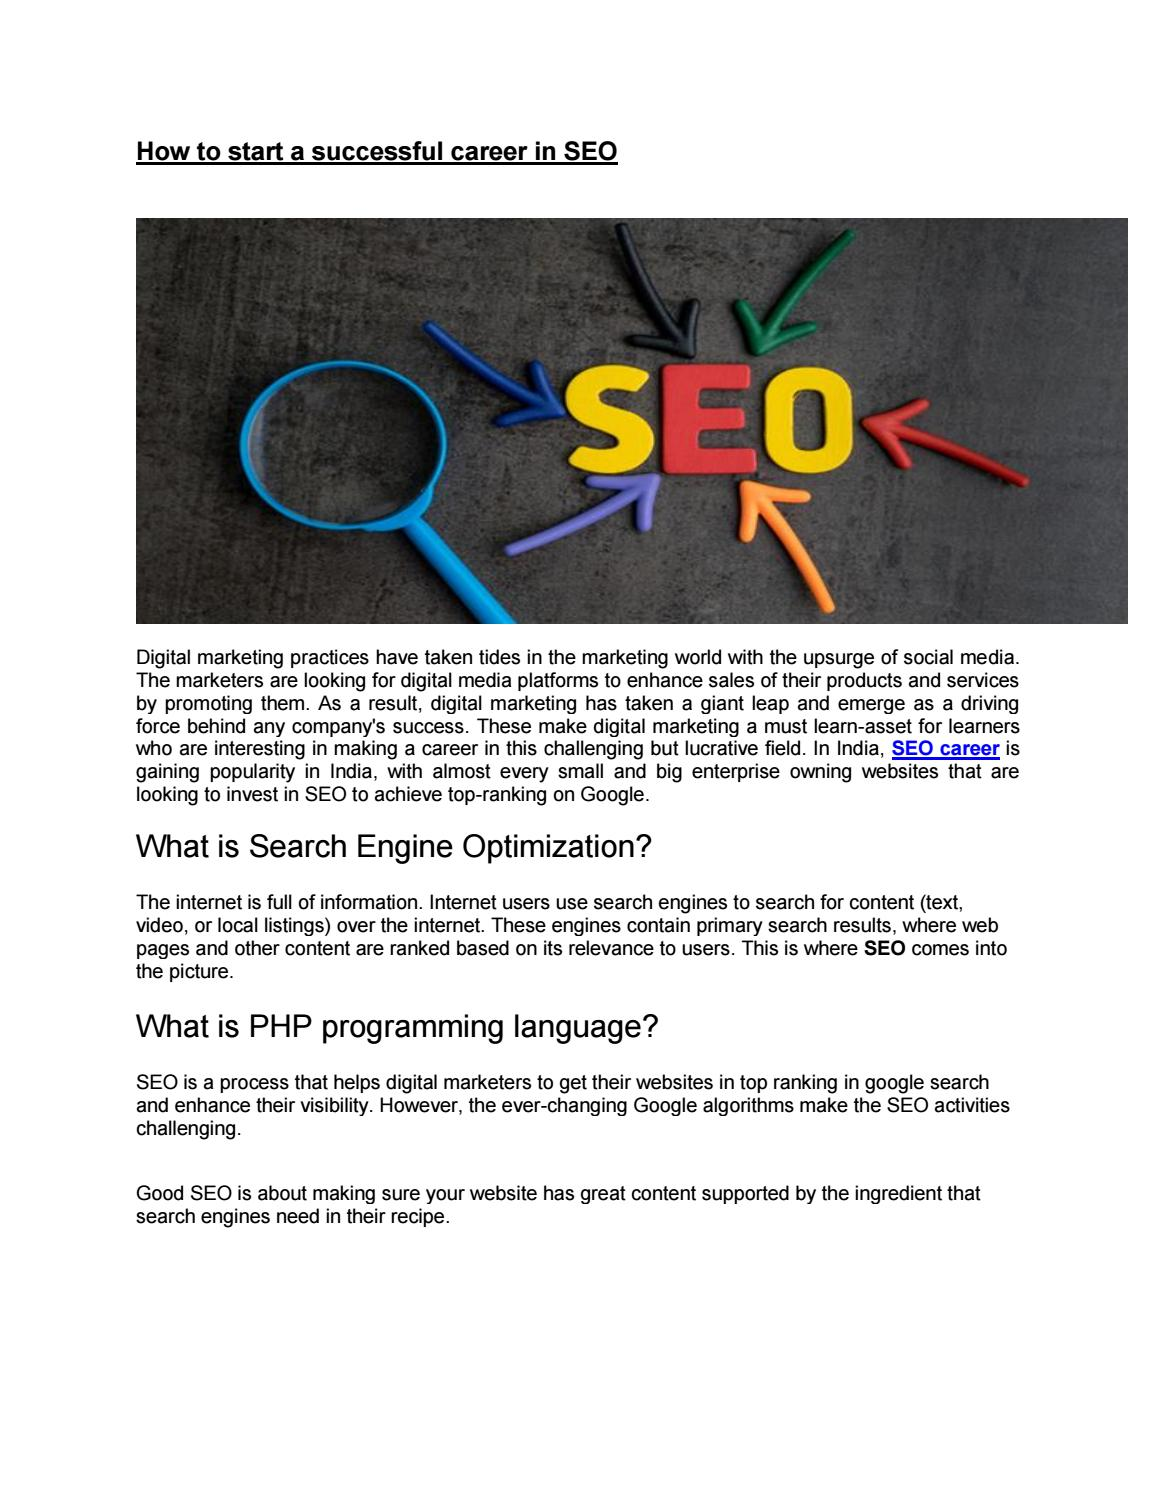 How to start a successful career in SEO by traininglobeinstitutes - issuu